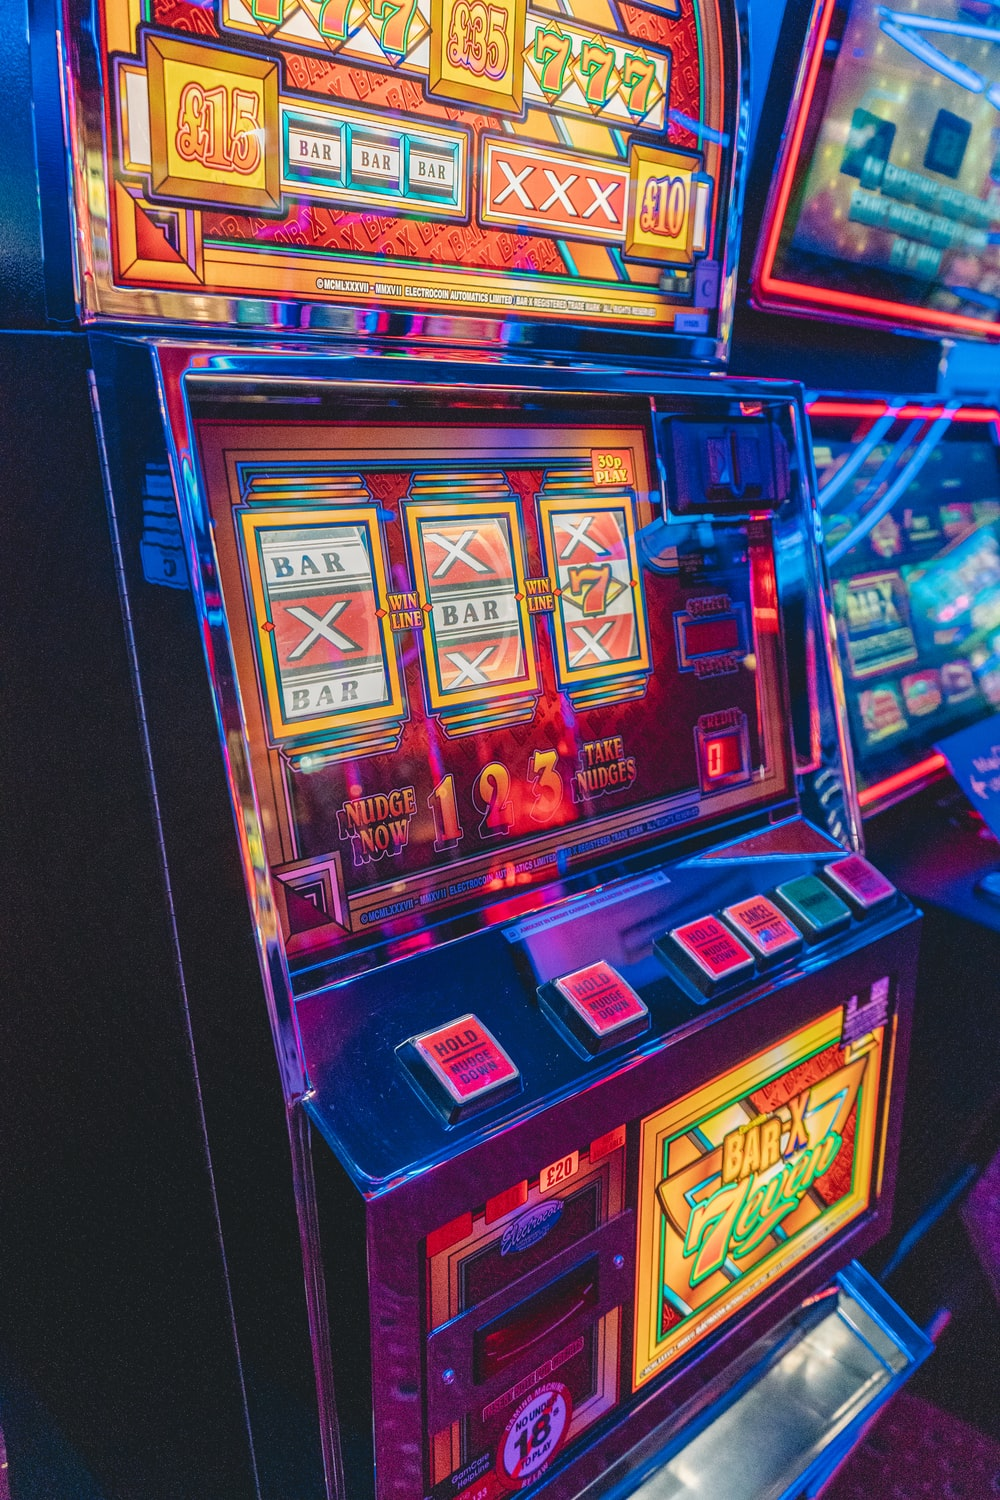 slot machine with lights turned on in the dark